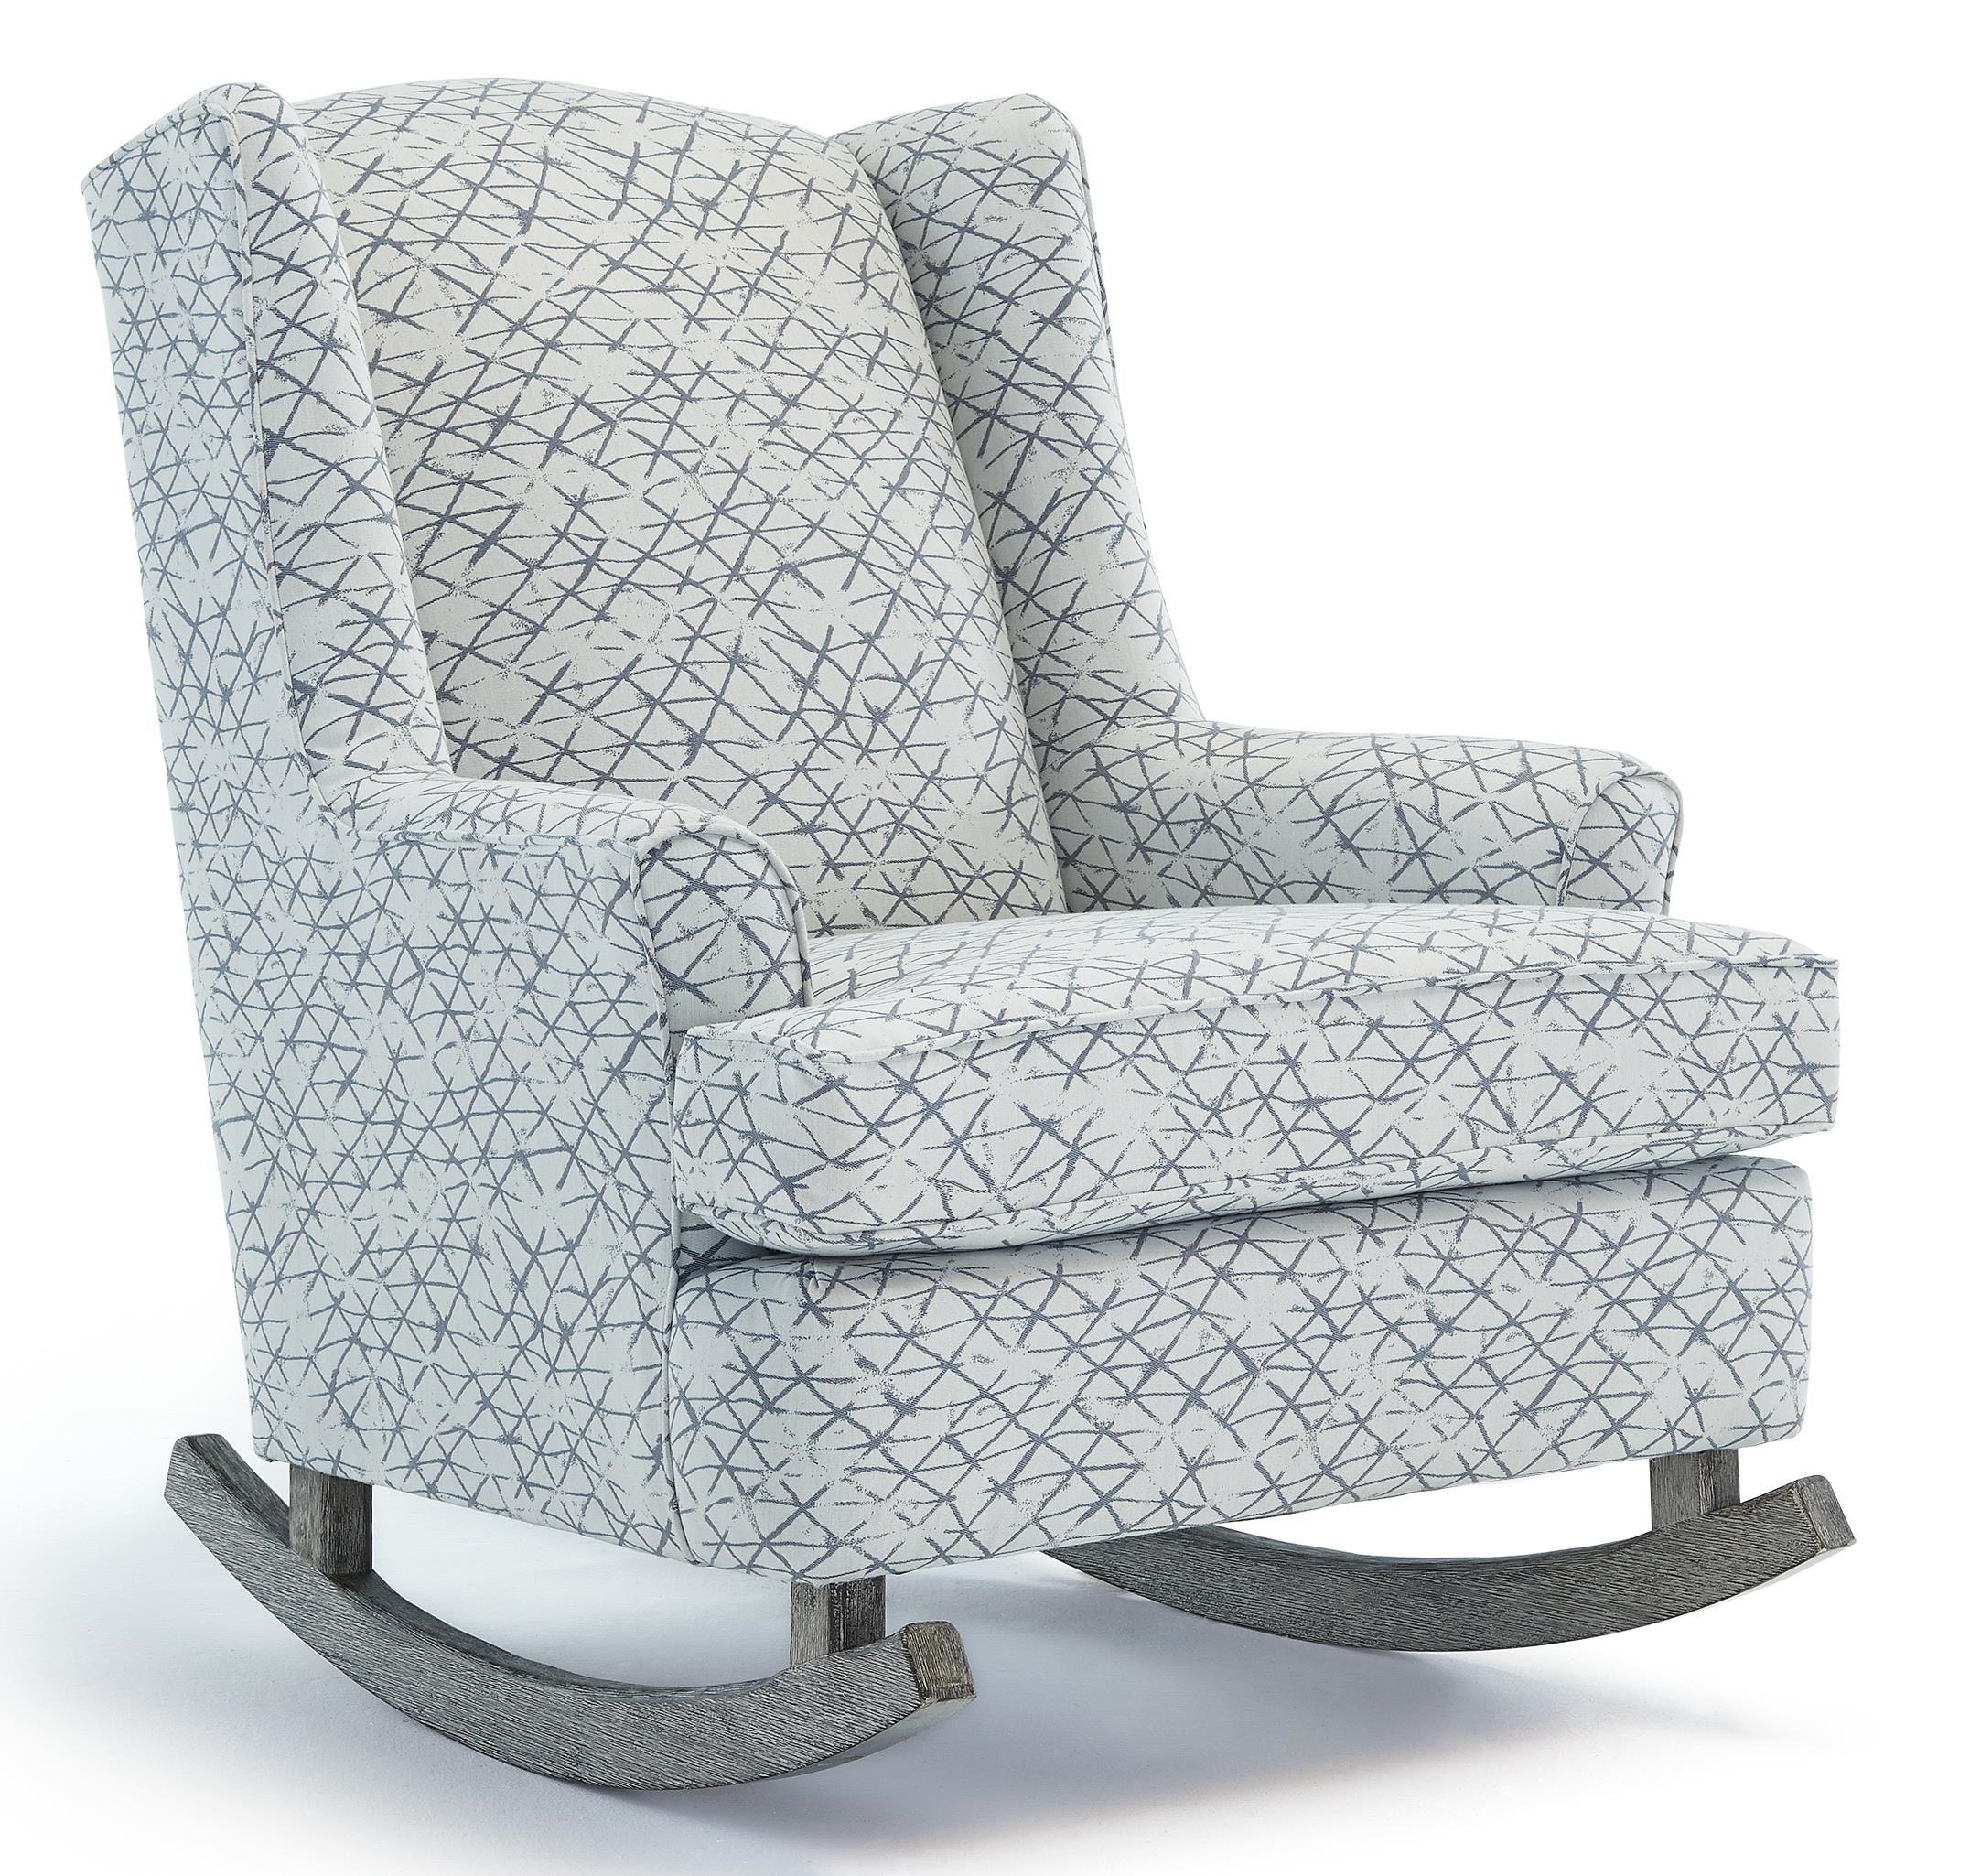 Superbe Best Home Furnishings Runner Rockers Willow Upholstered Rocking Chair With  Wood Runners